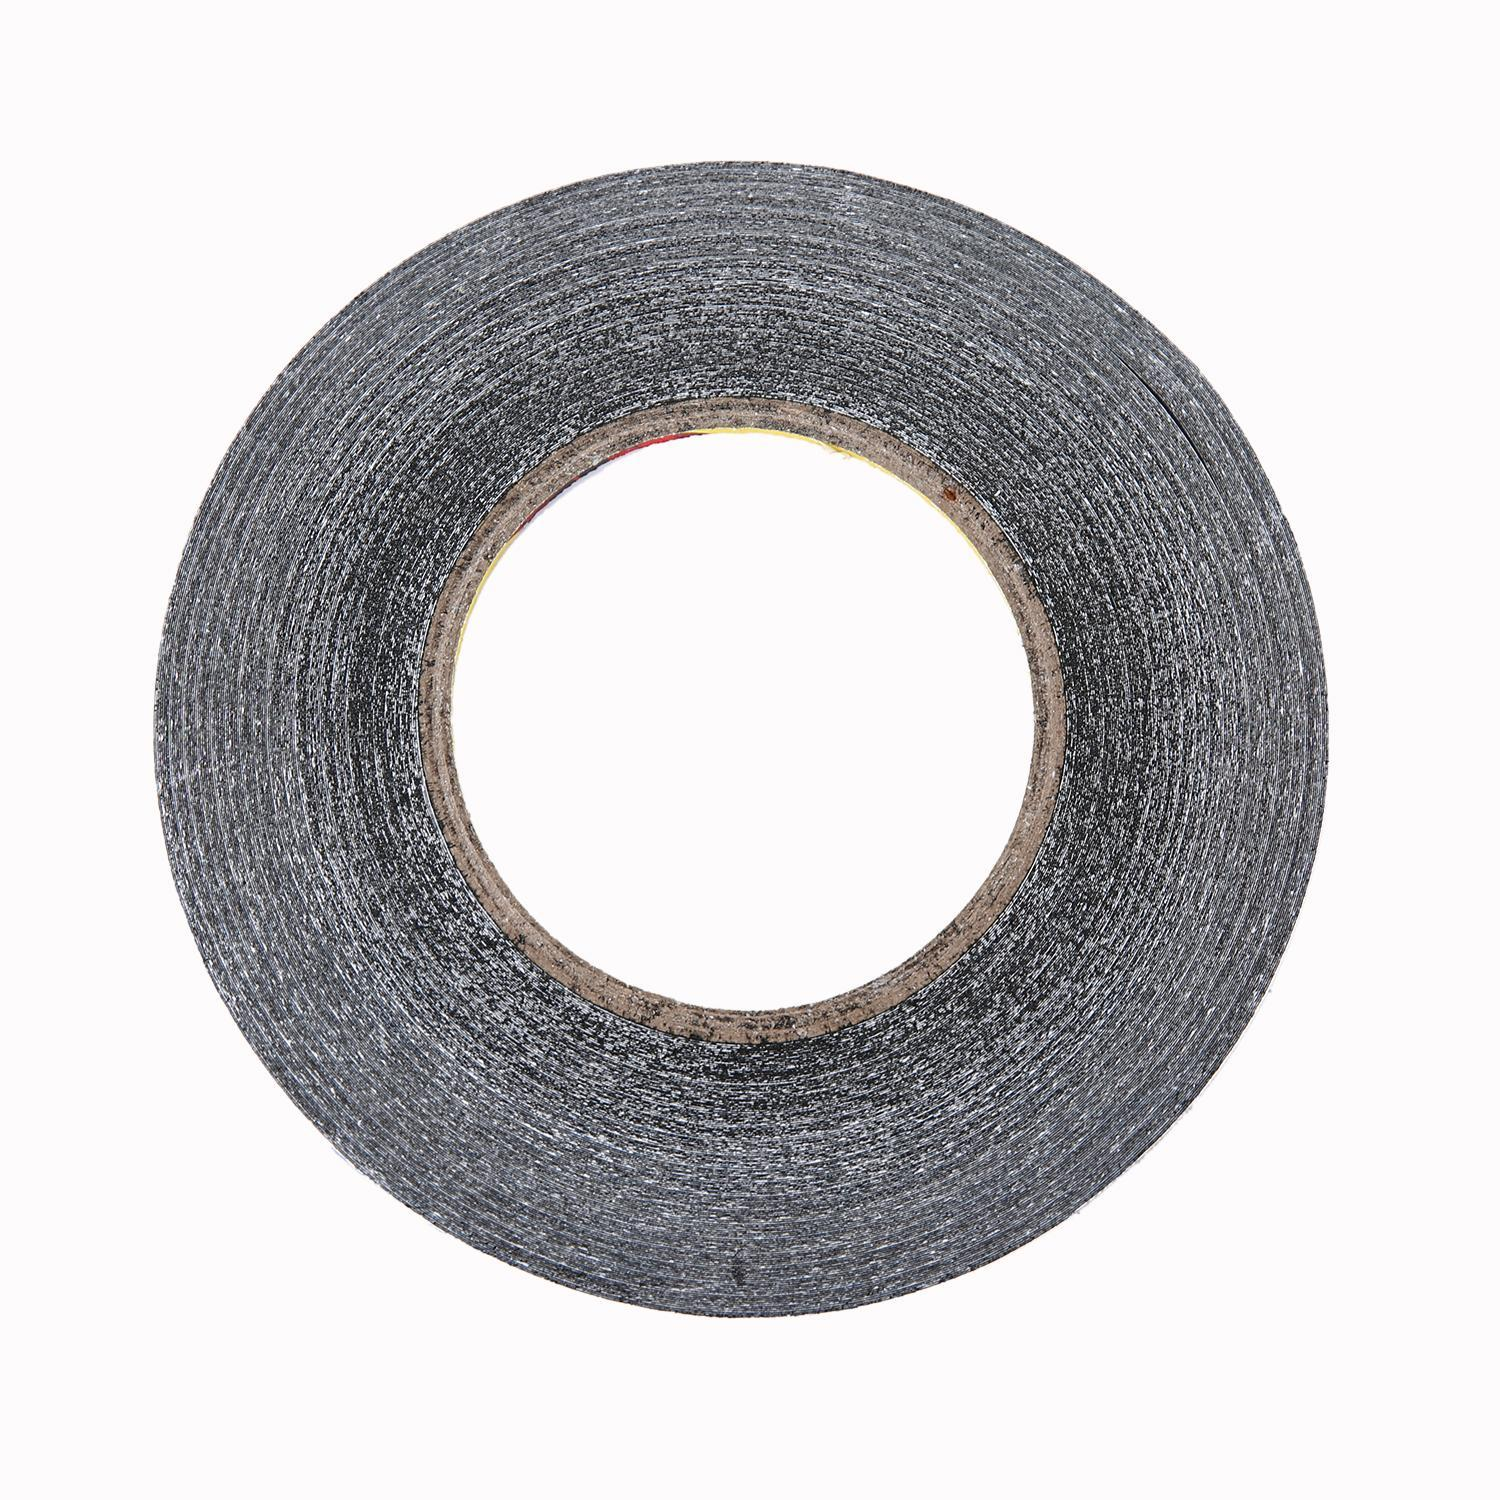 JinQS 1mm Wide 50m Long Double Sided Layer Adhesive Sticky Tape for Cellphone,Touch Screen Glass,HTC HD Mini HD2,etc